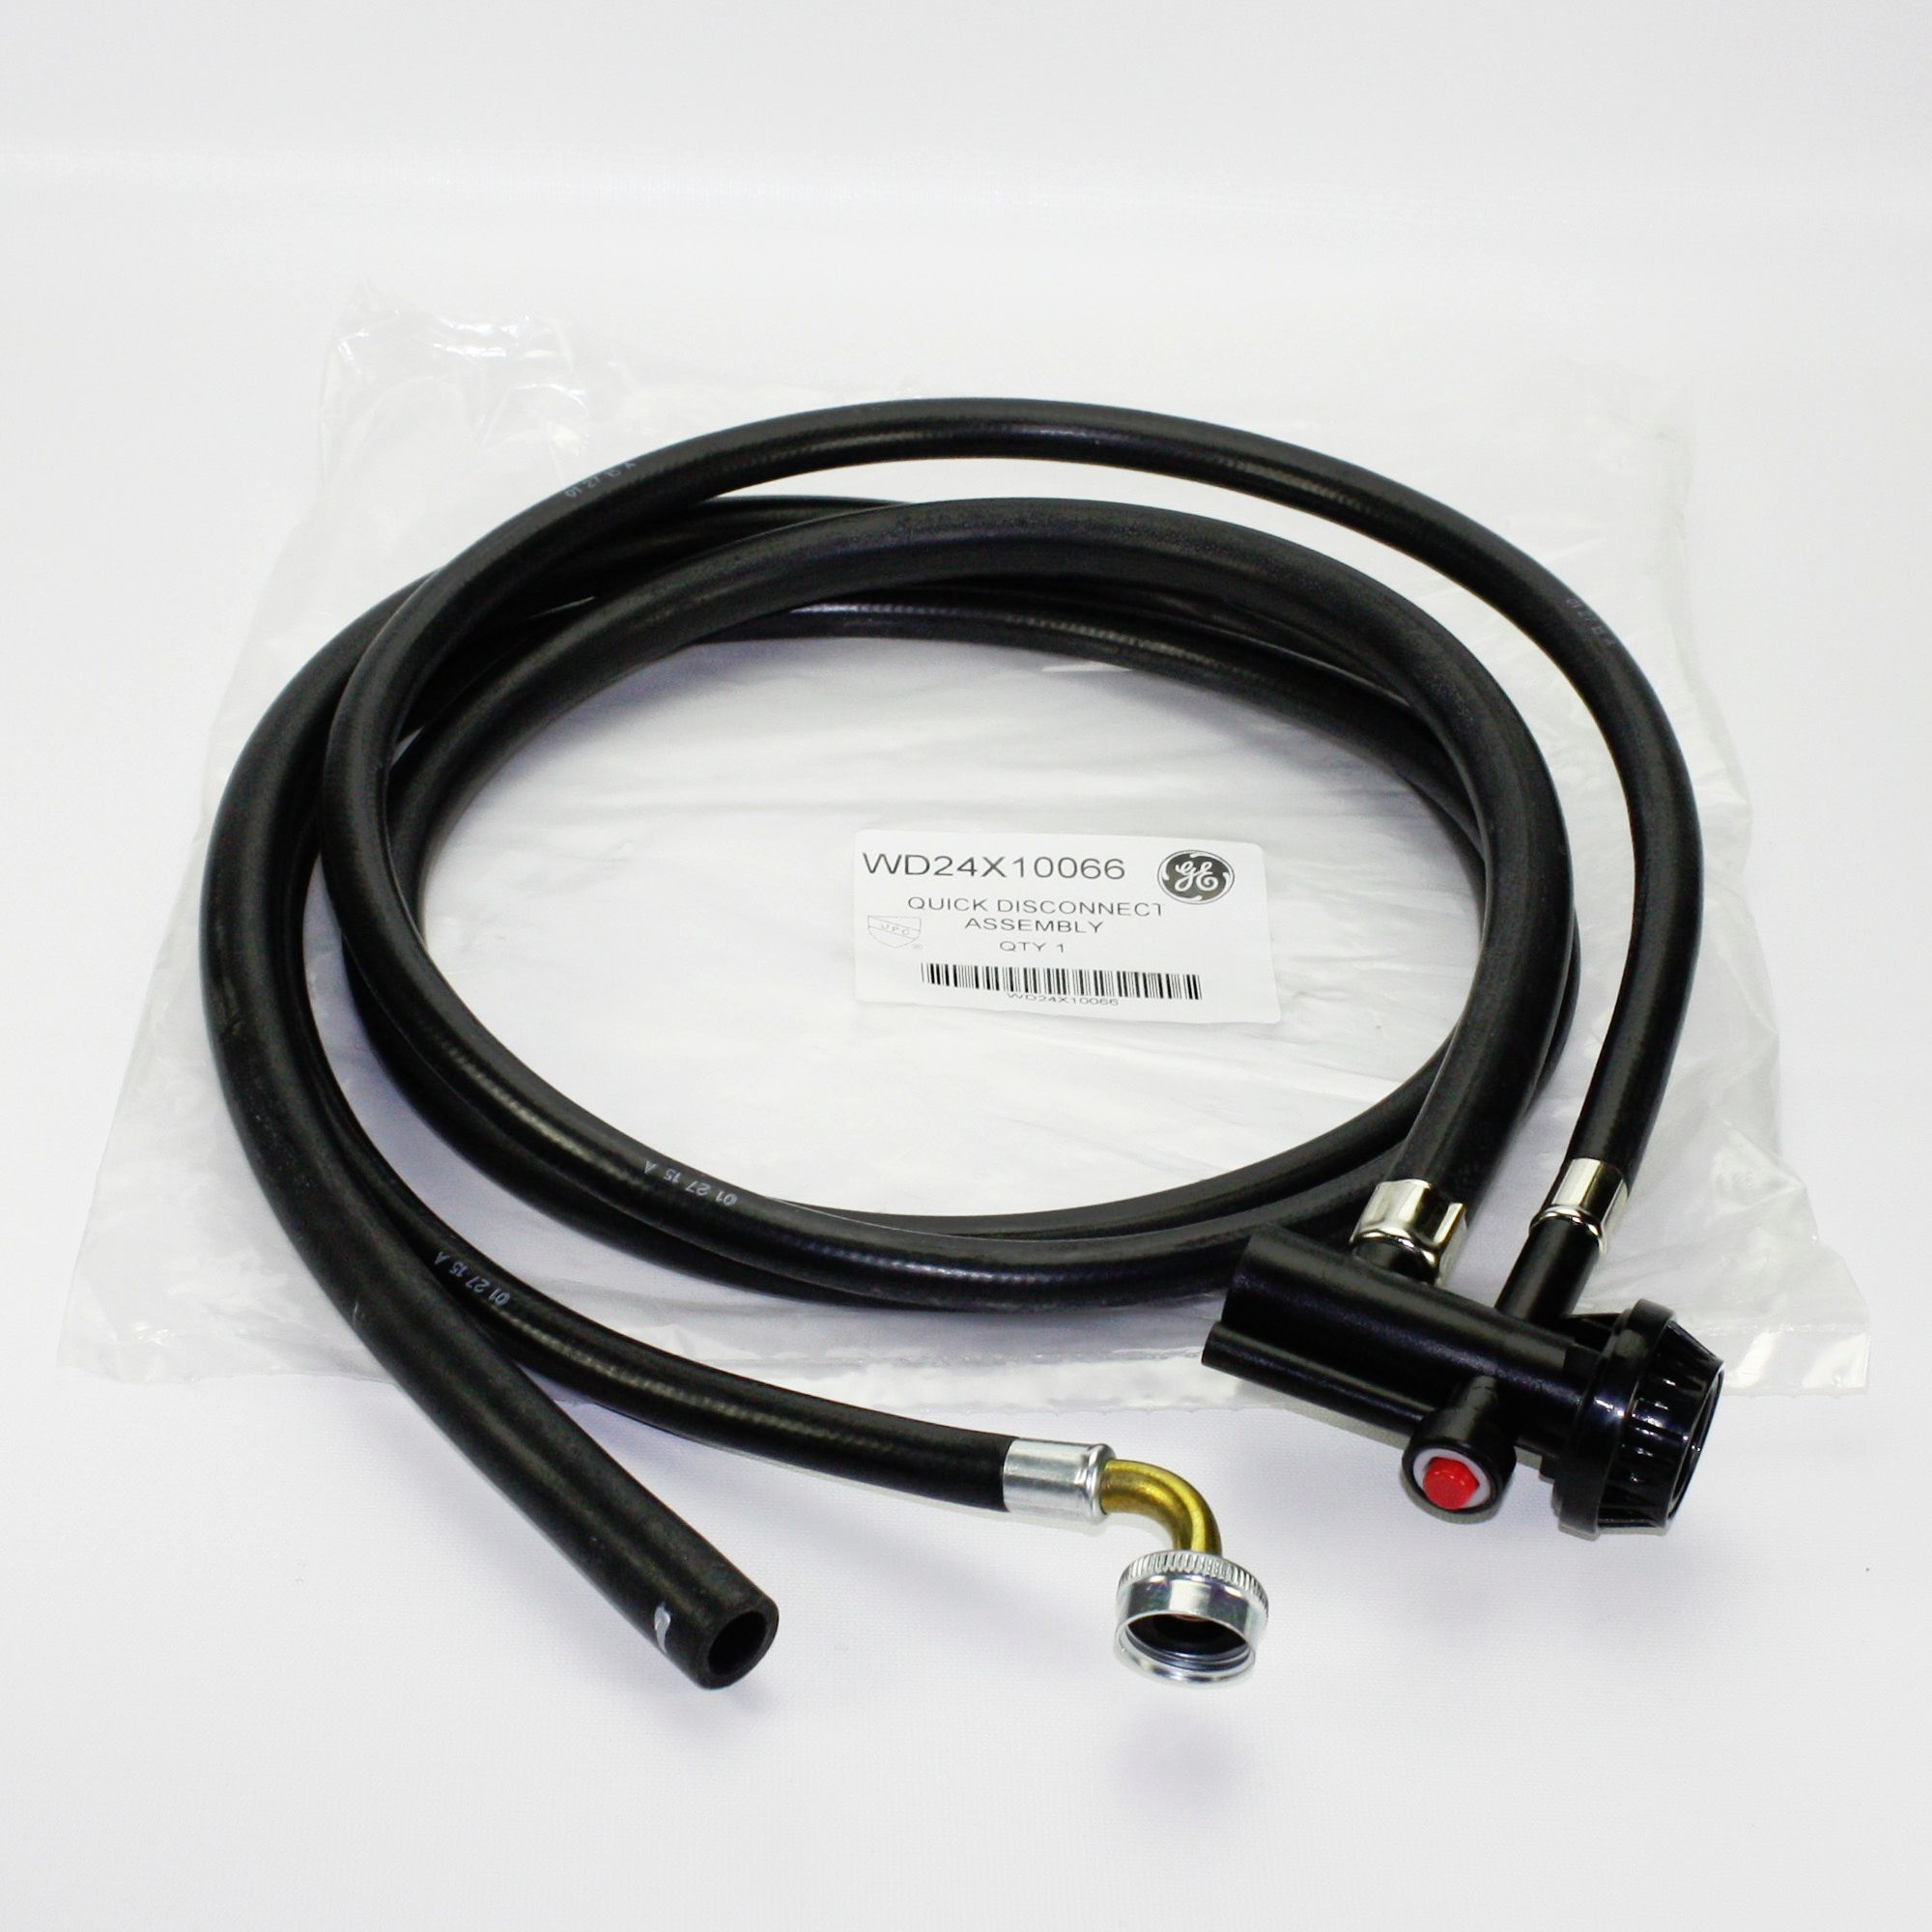 WD24X10066 For GE Portable Dishwasher Drain and Fill Hose